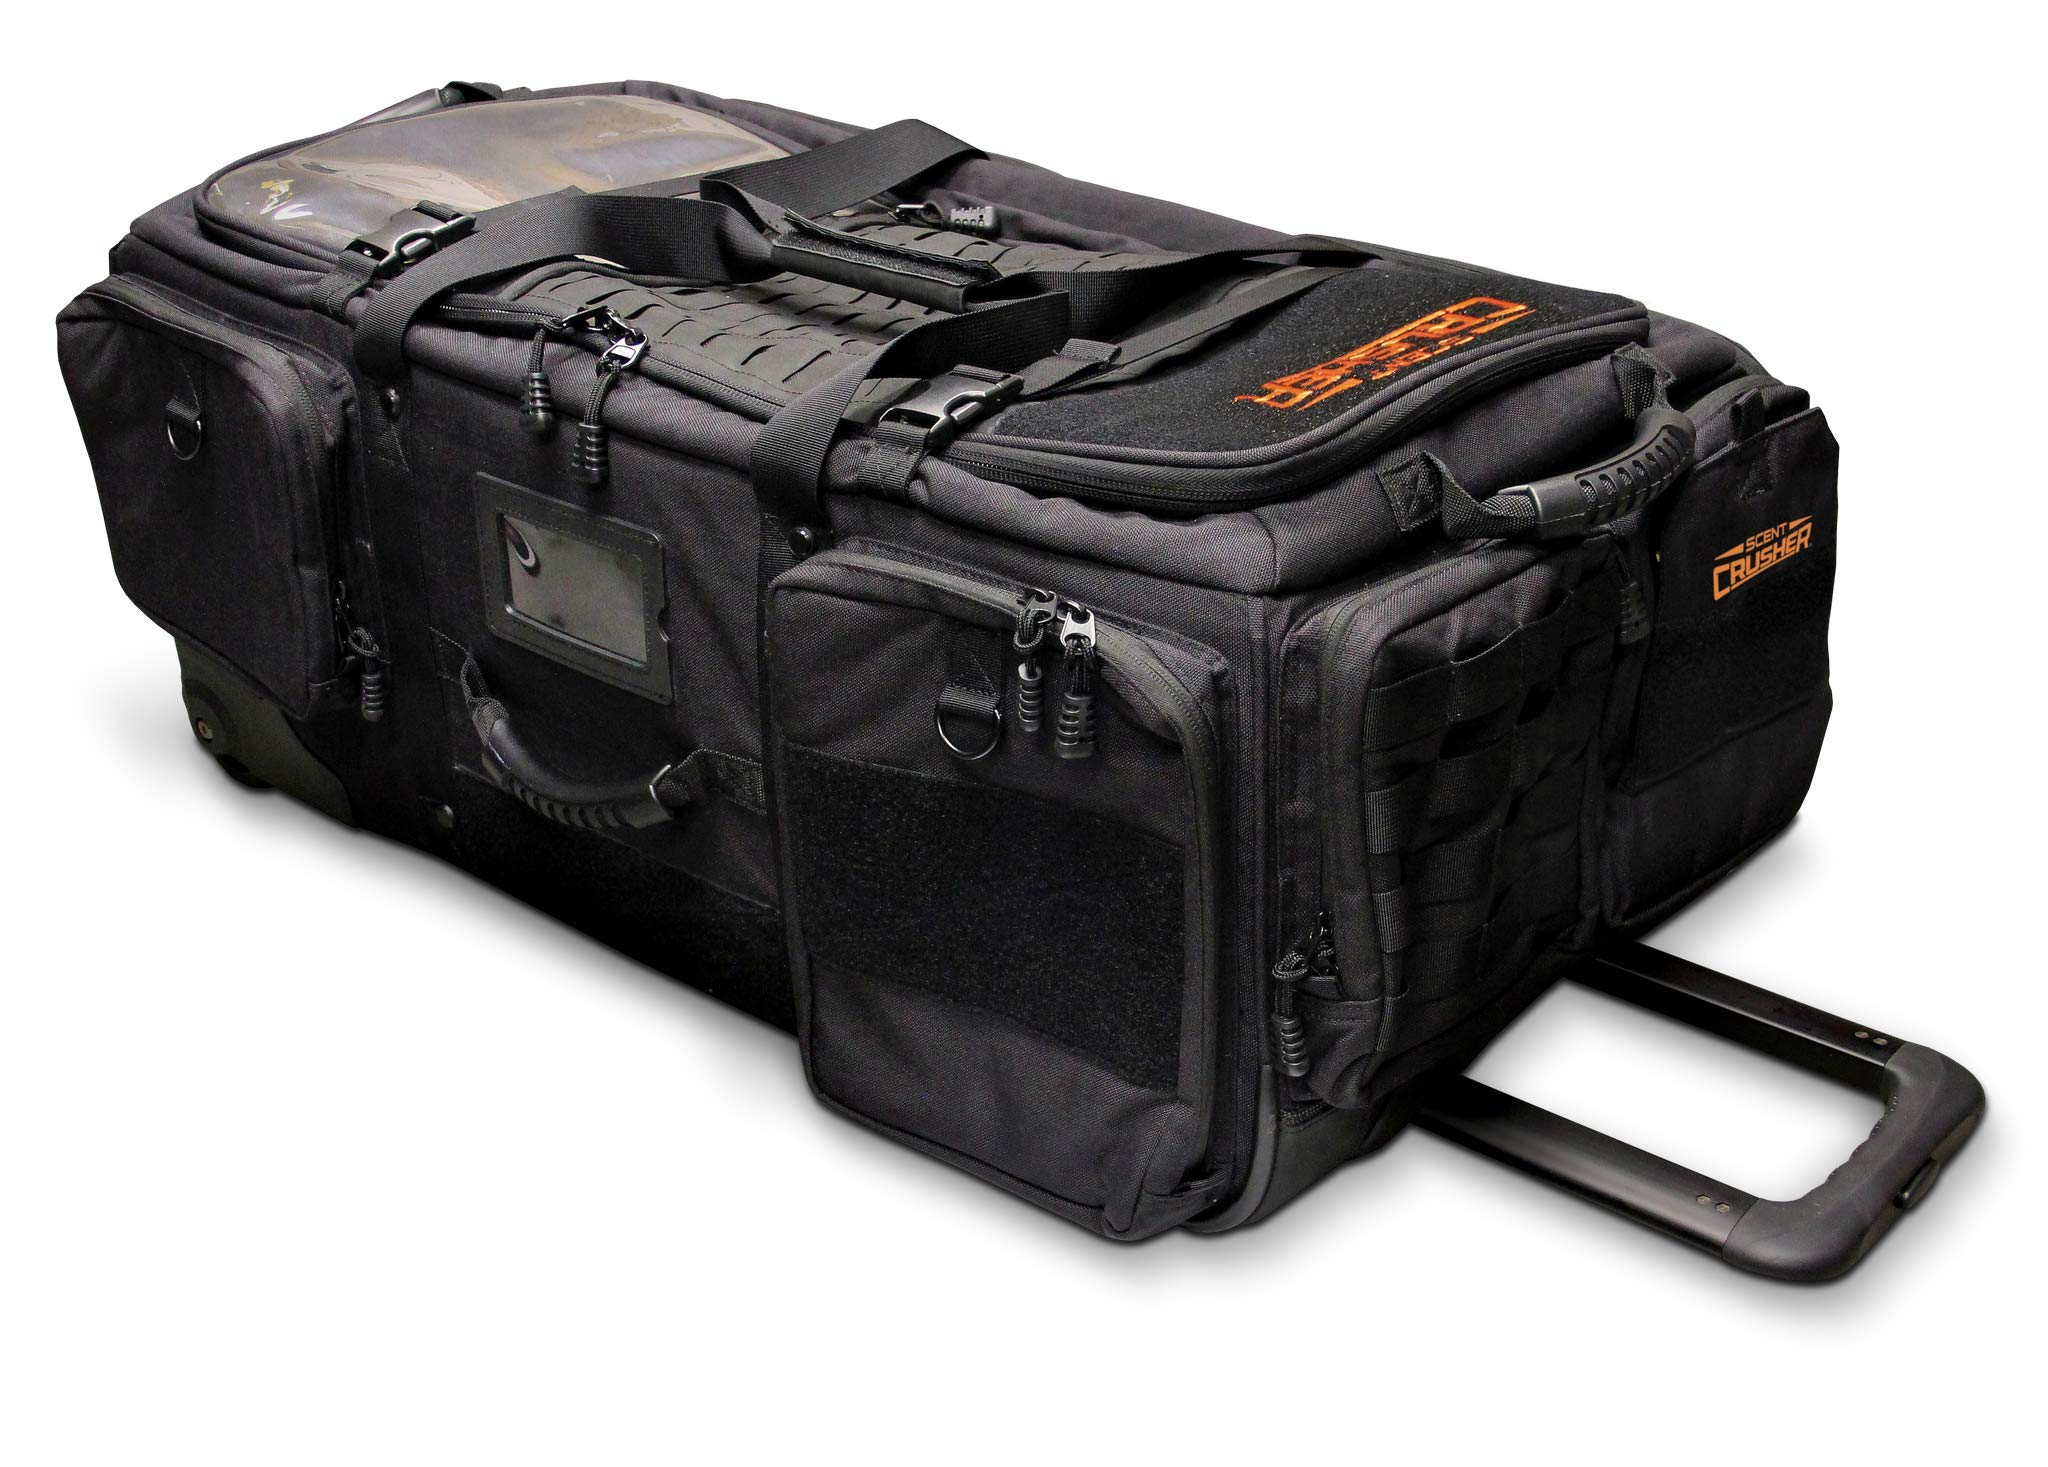 Scent Crusher Pro Series Transport Bag - Destroys Odors Within 30 mins, Heavy-Duty Oversized All-Terrain Wheels and Skit Plates, Use at Home or On The Way to The Field, Airport/TSA Compliant